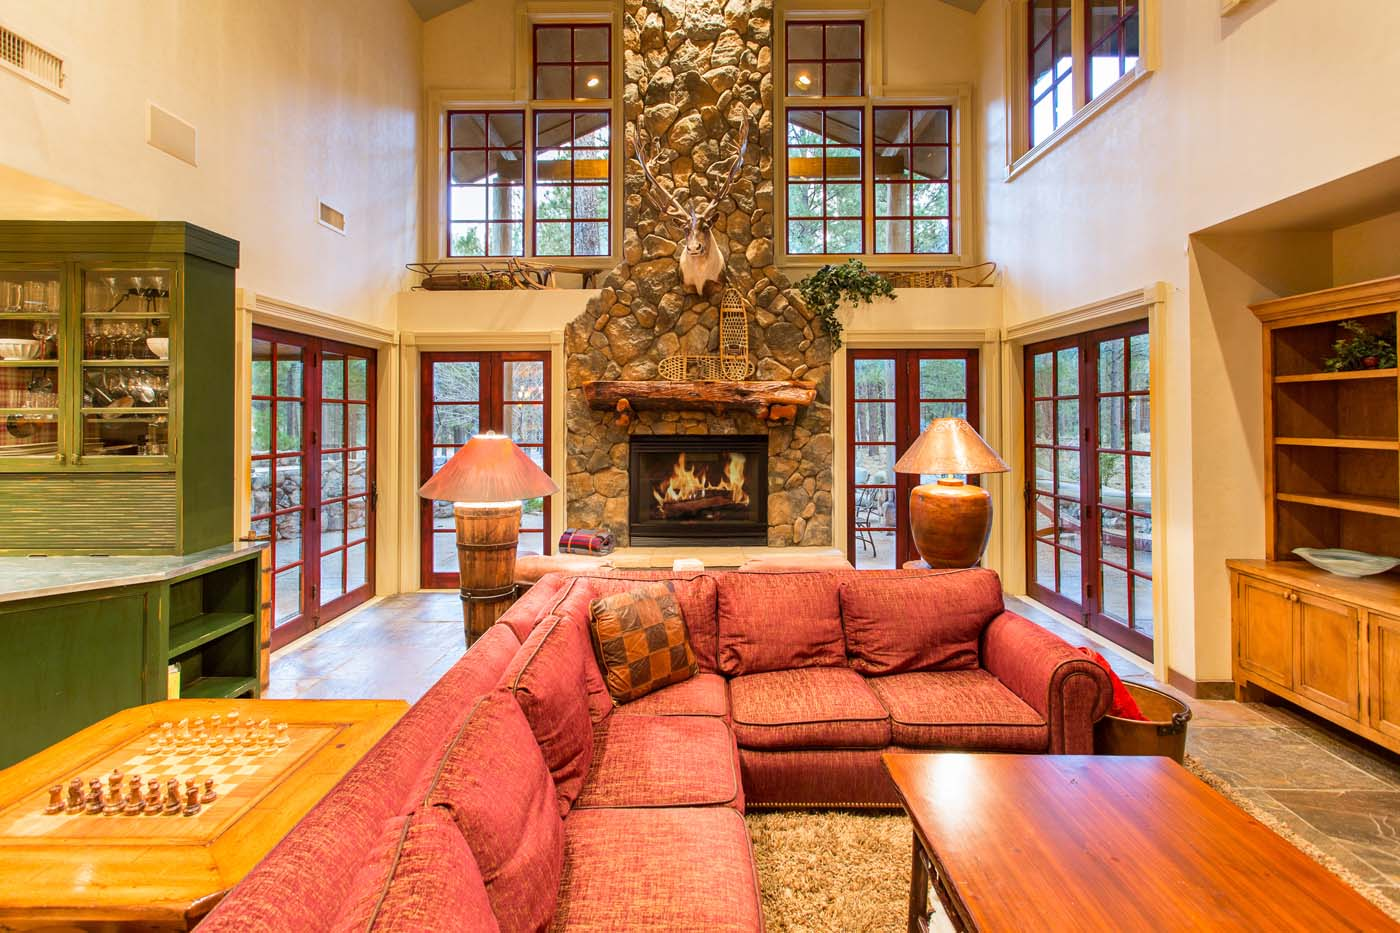 Forest Highlands, Forest Highlands Real Estate, Forest Highlands Homes, Eileen Taggart